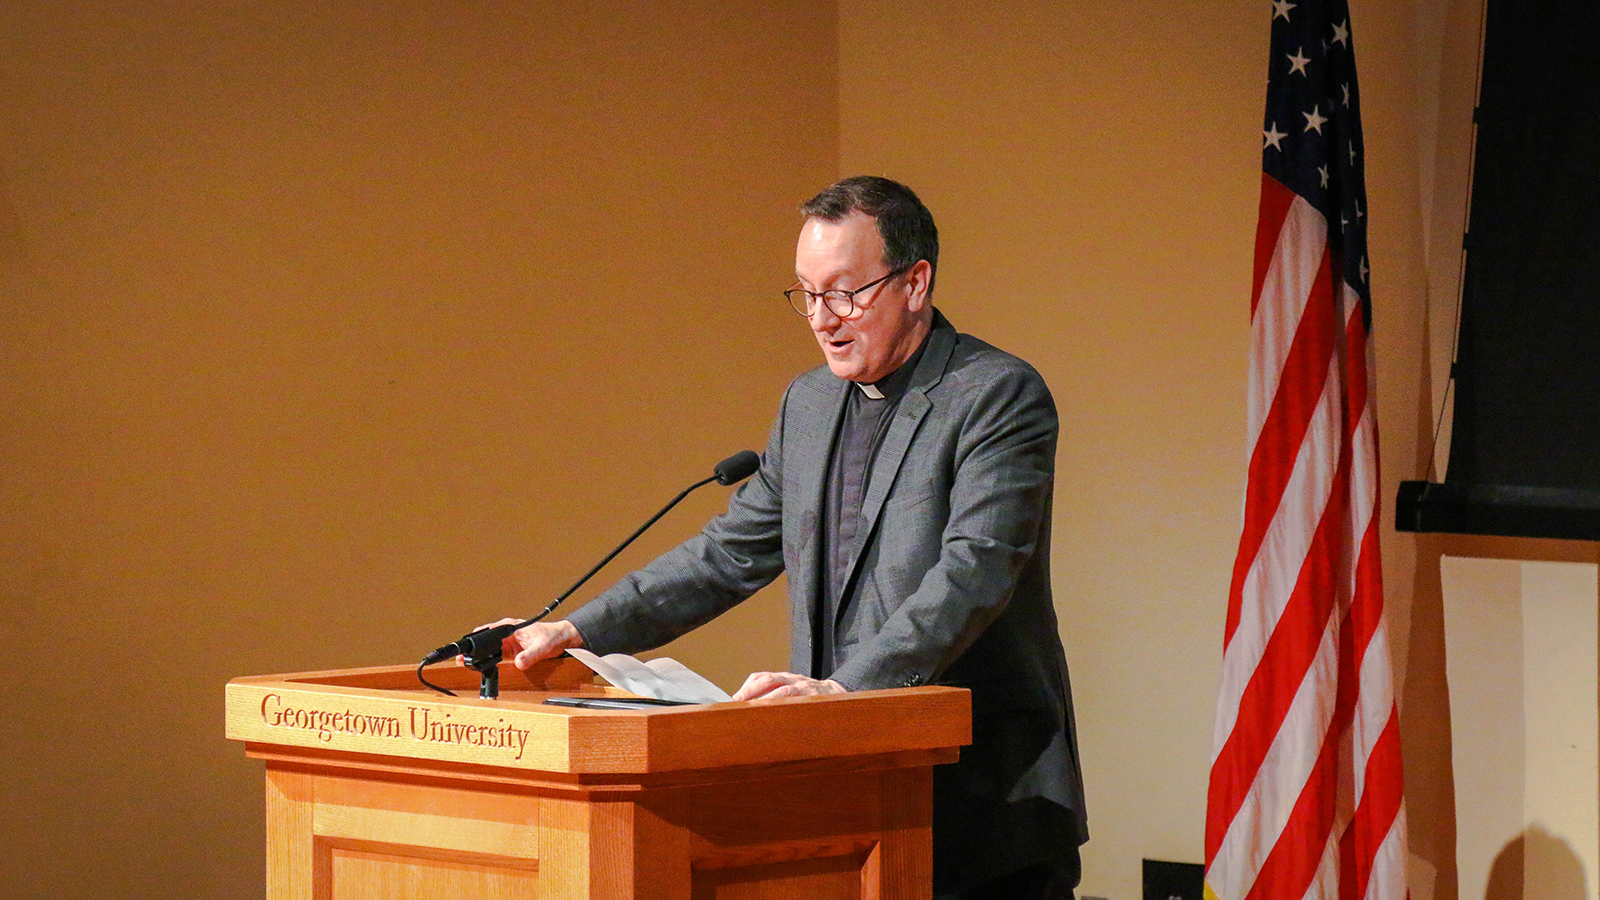 Rev. Mark Bosco, S.J., vice president for mission and ministry, at the podium.